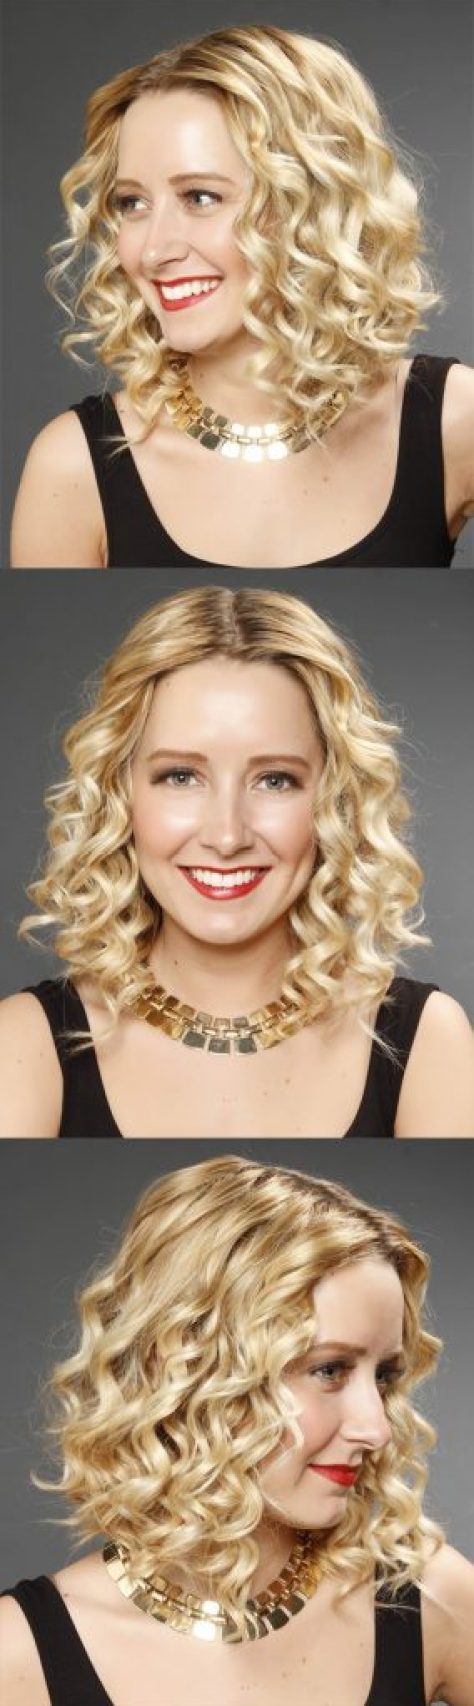 Center Parted Blonde Hair with Curls